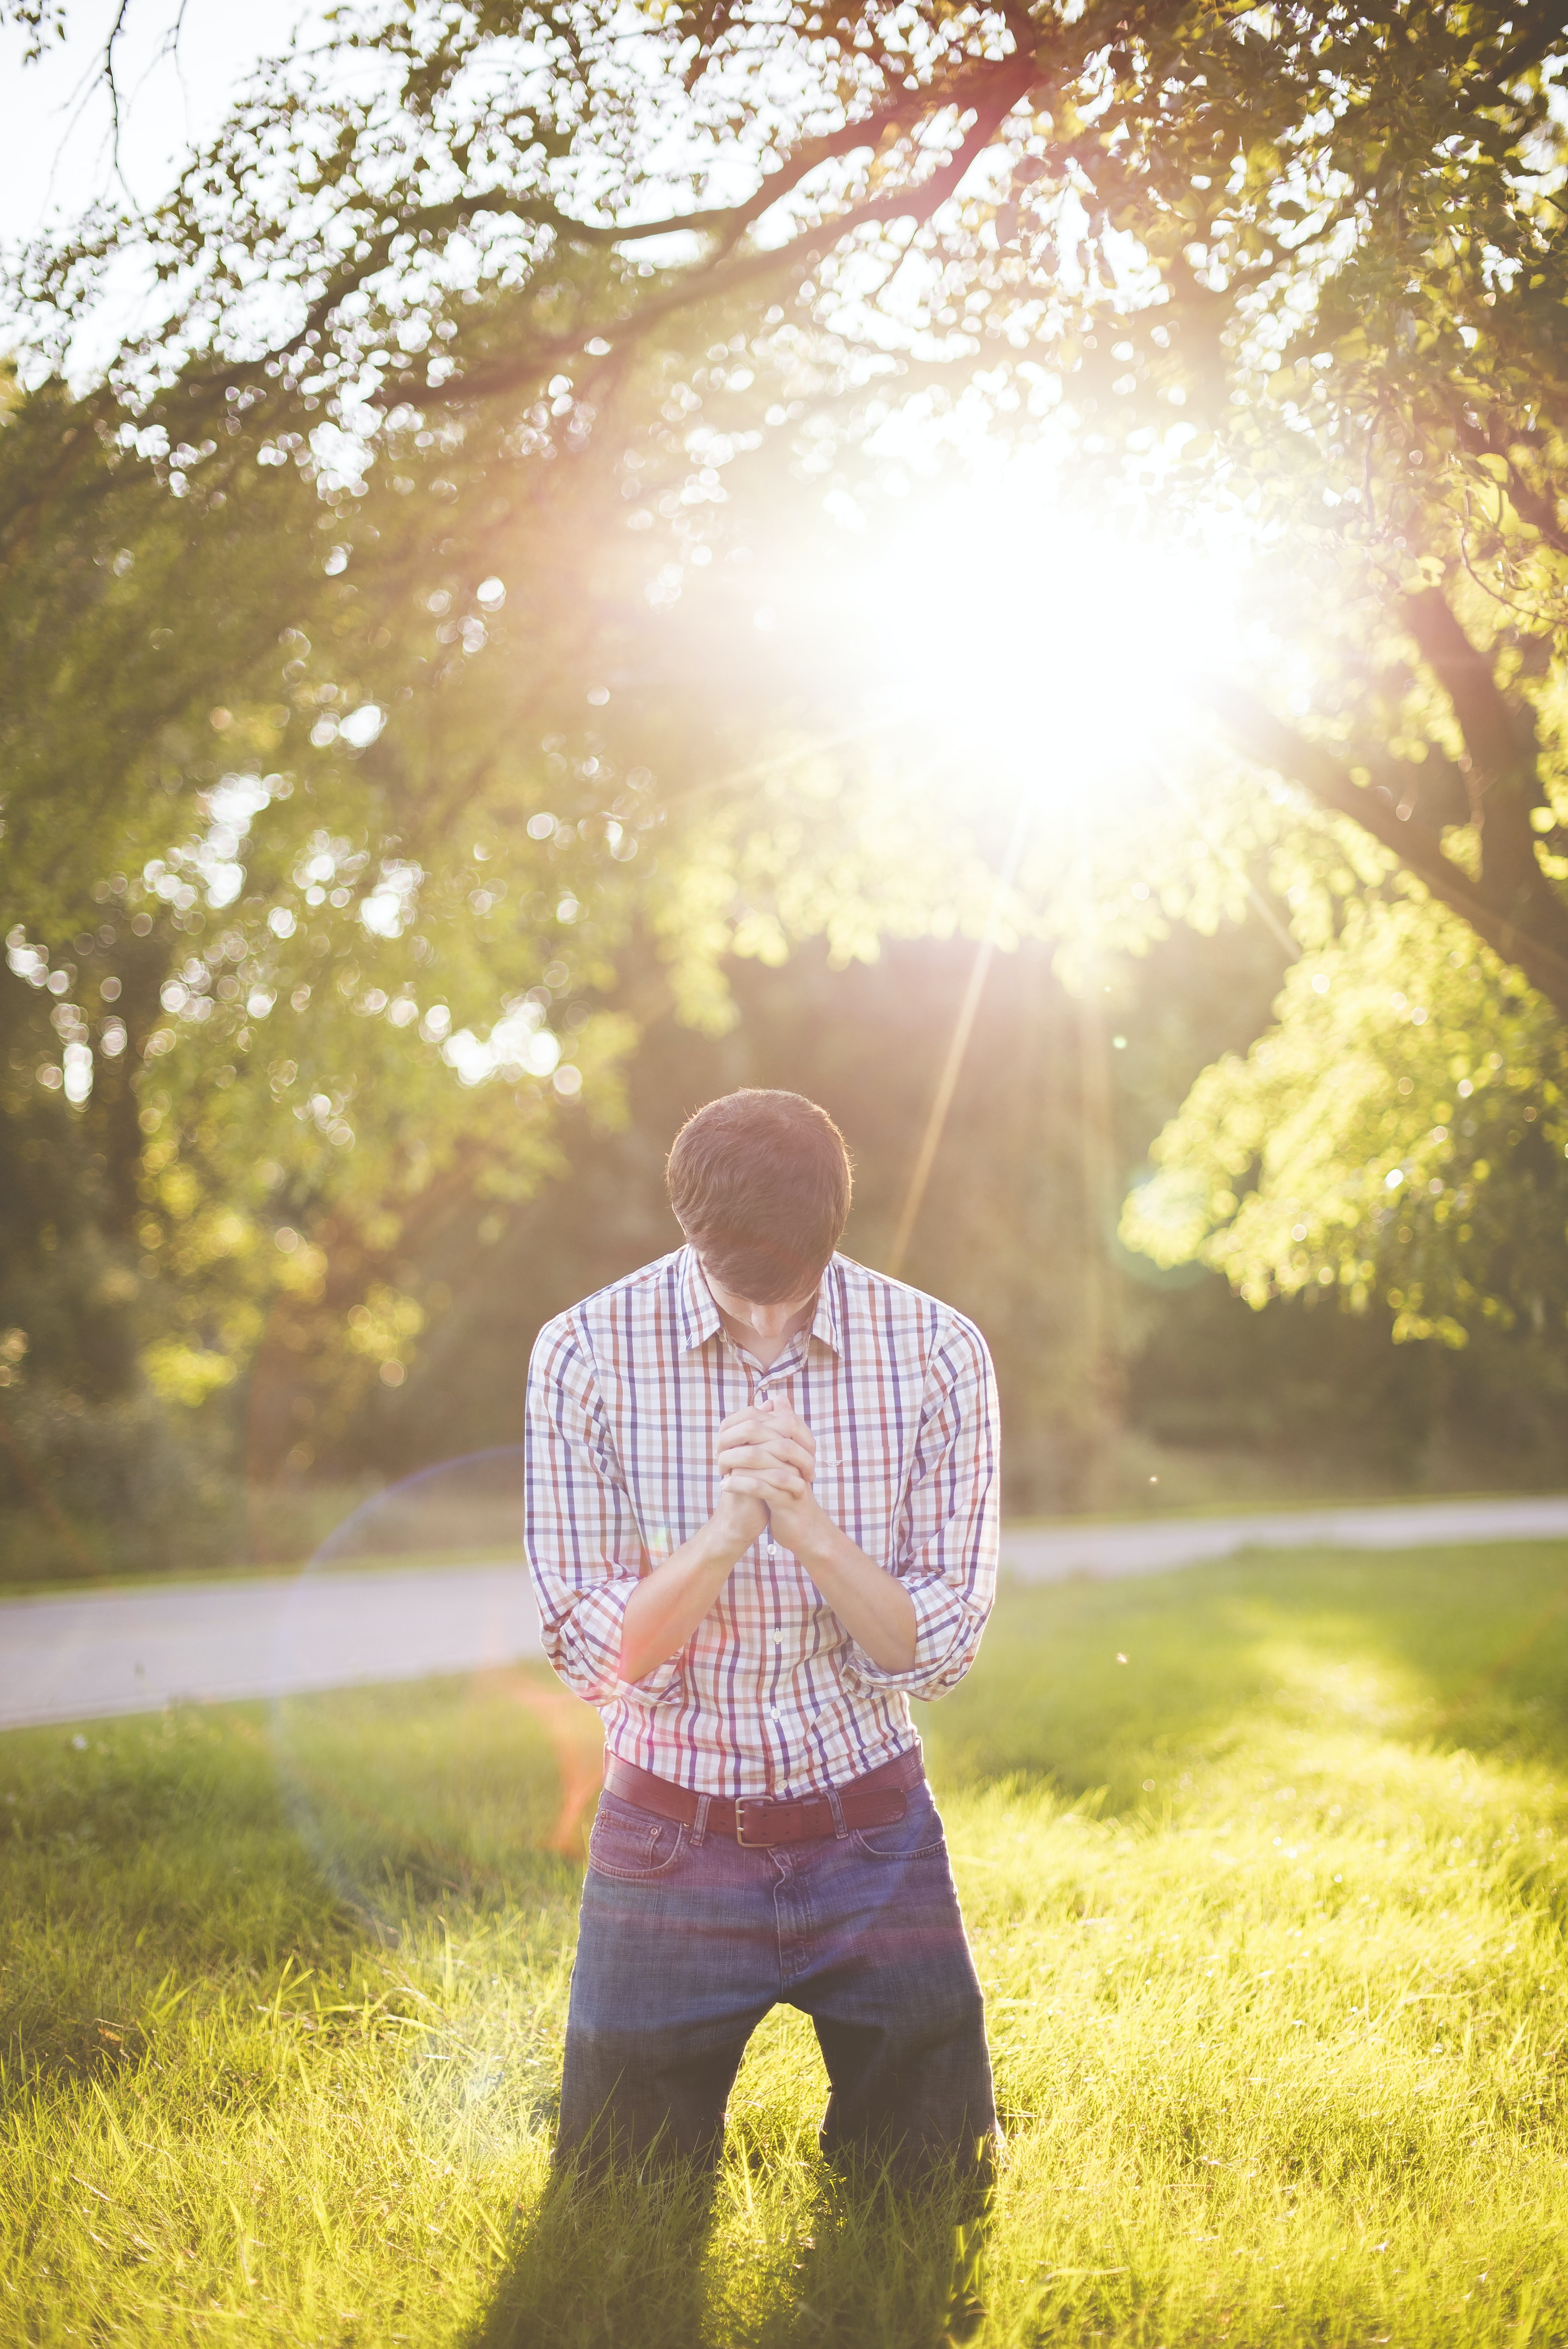 photo of man kneeling on grass near tree